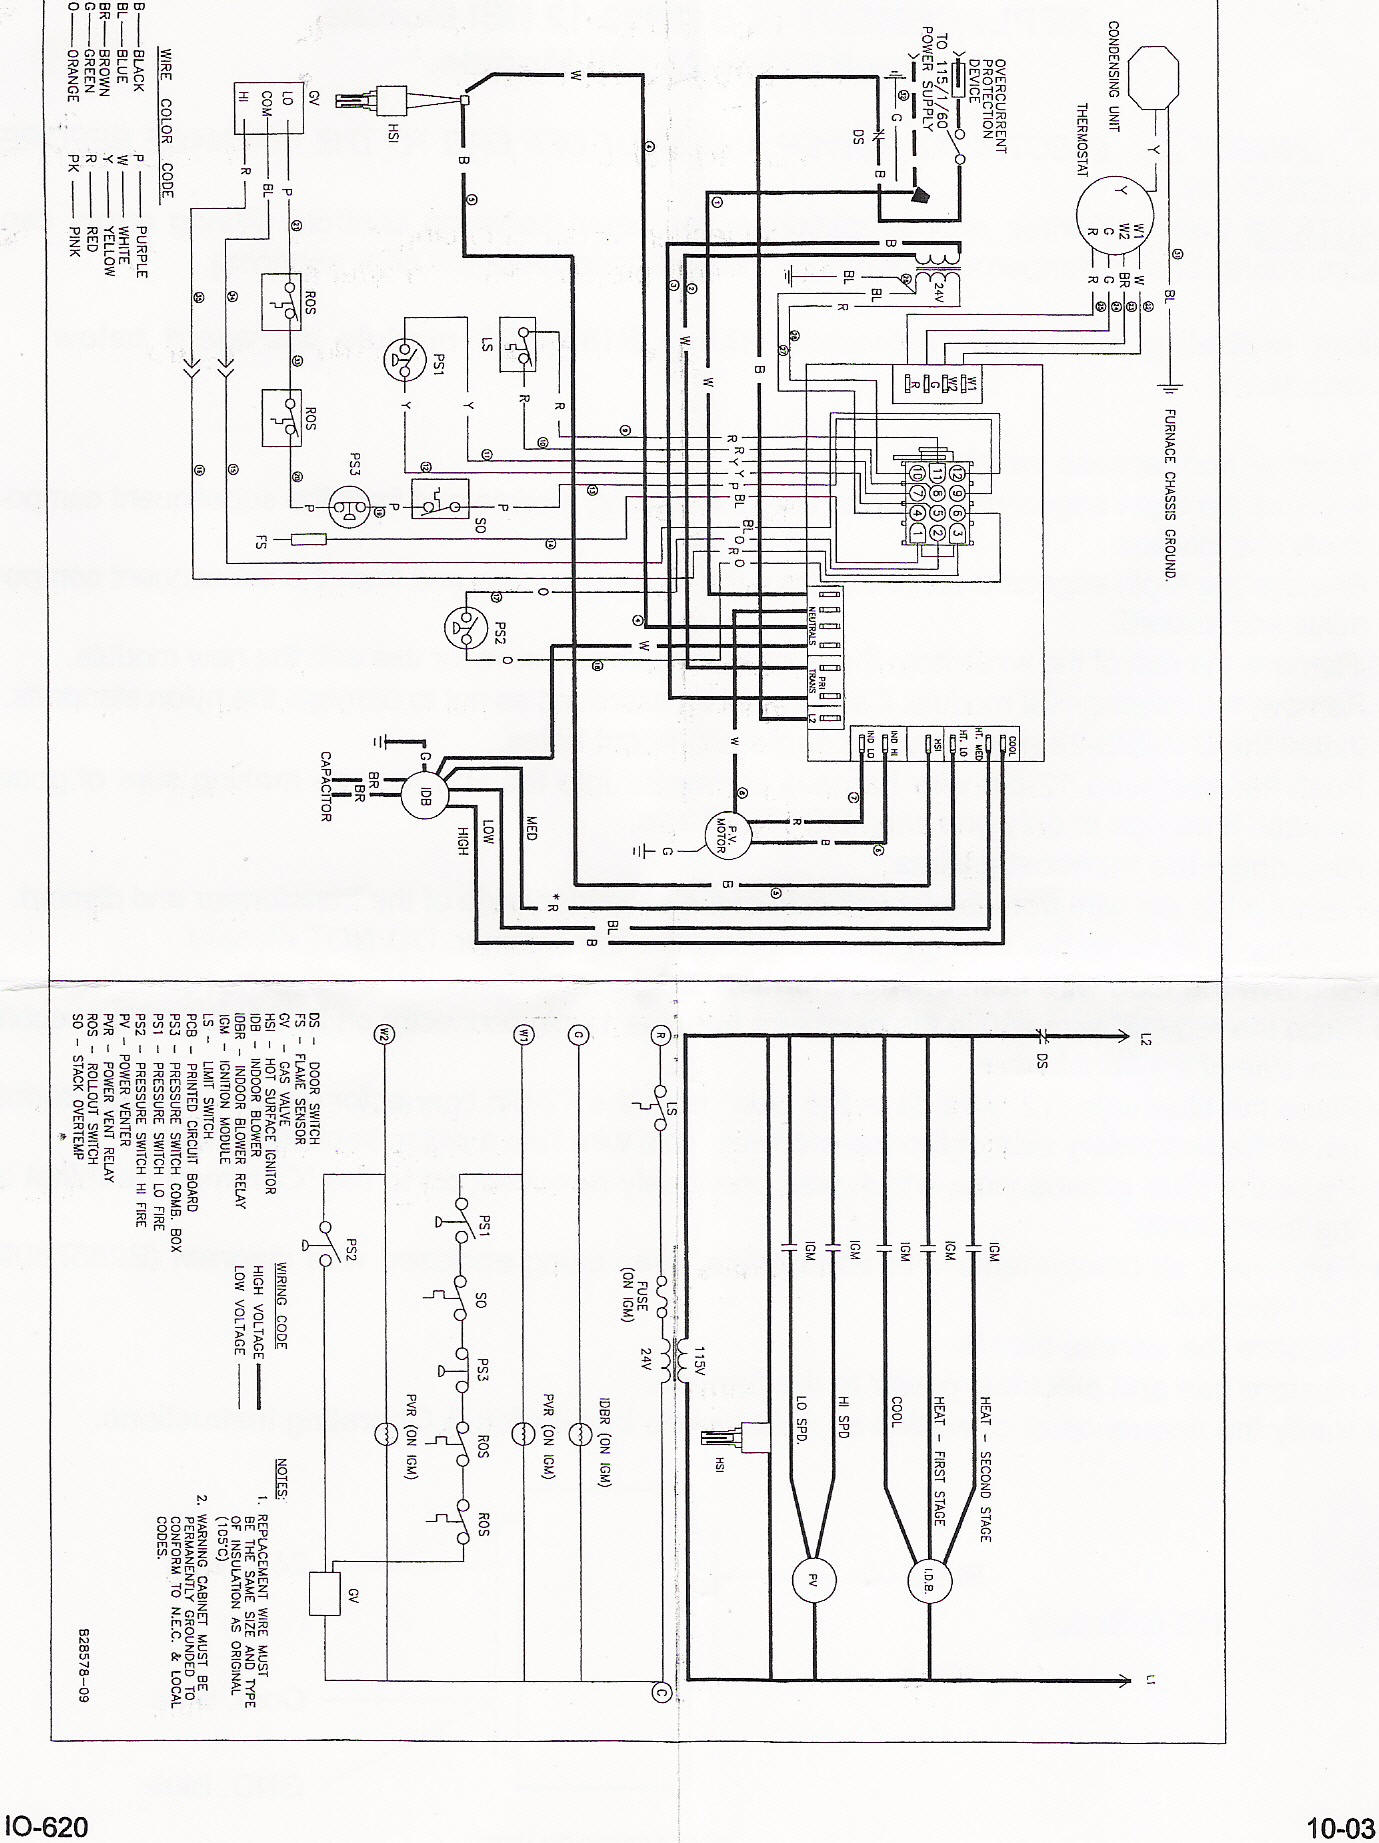 goodma2 instr goodman control board b18099 23 instructions Gas Furnace Wiring Diagram at creativeand.co